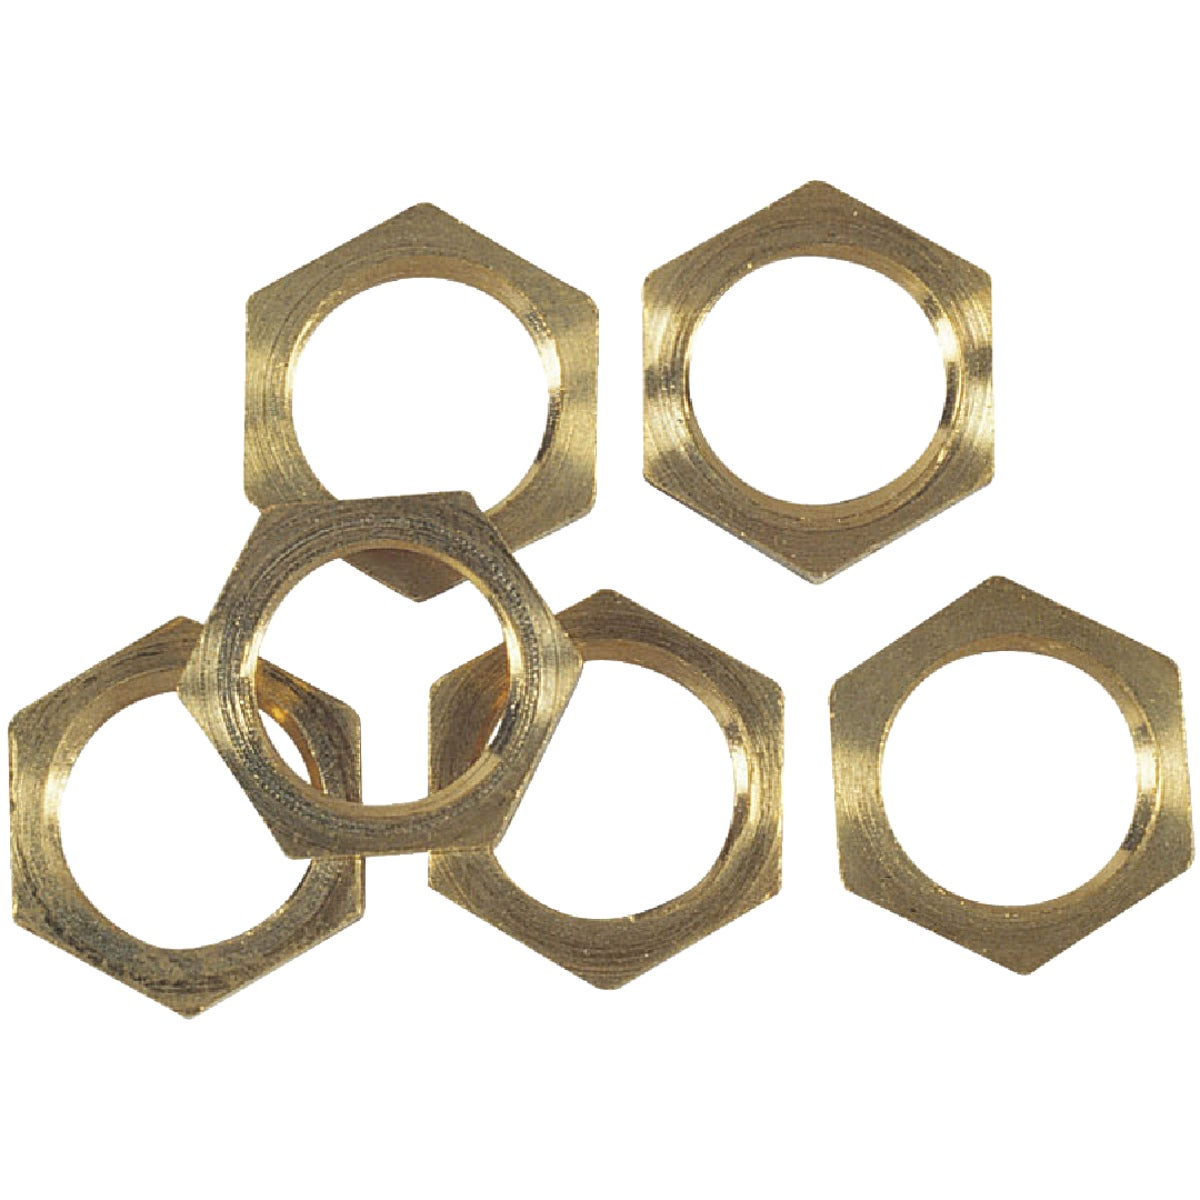 BRASS LAMP LOCKNUTS